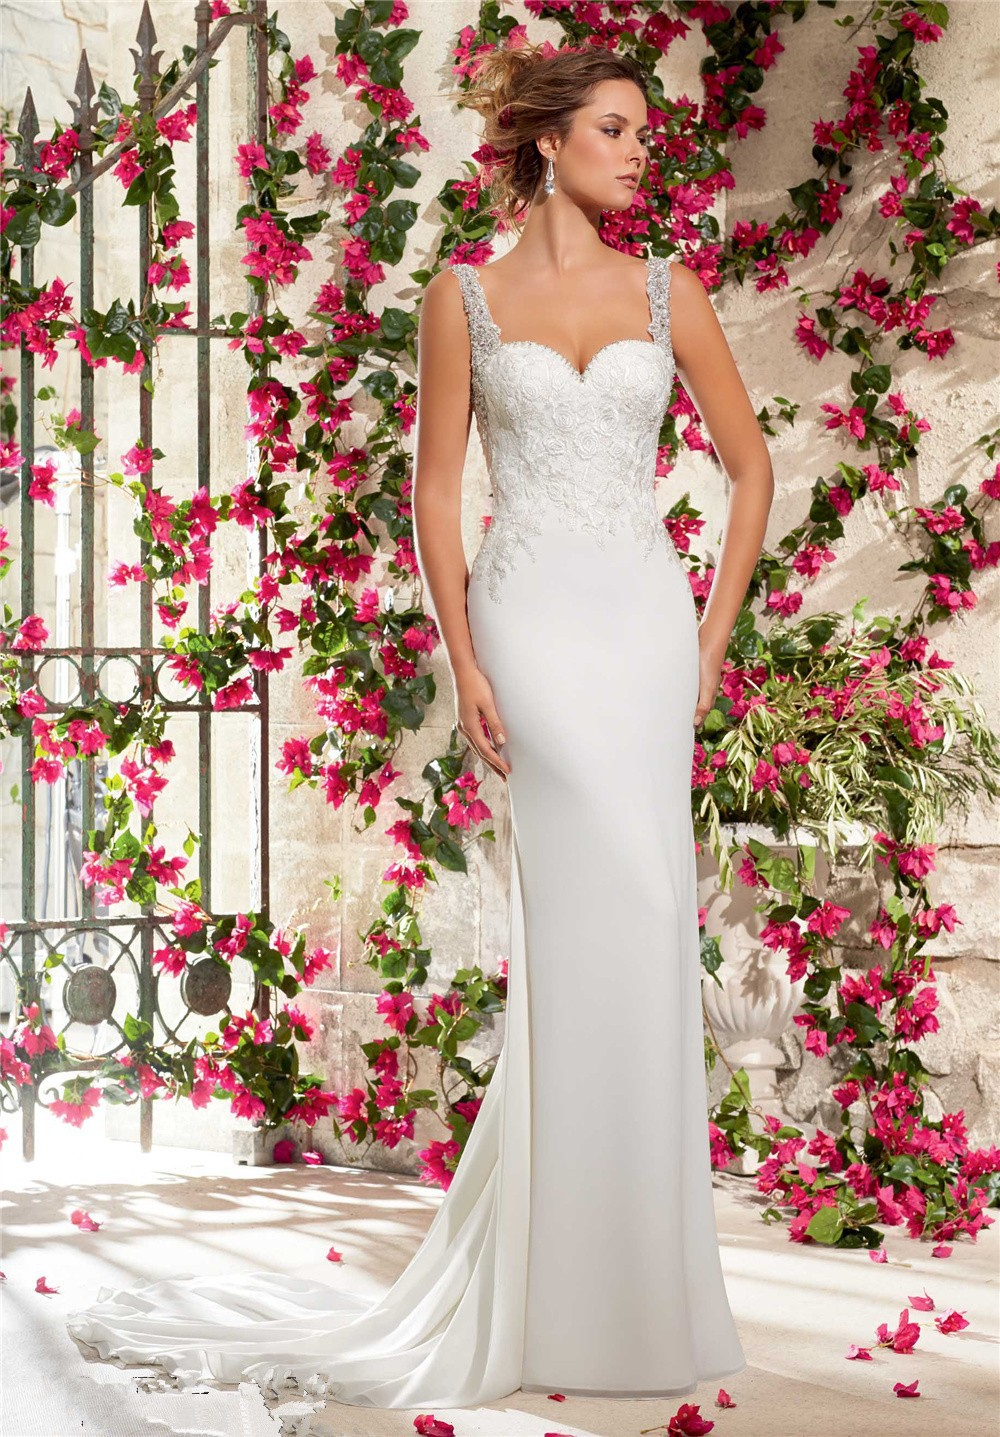 Romantic Lace Wedding Dress 2015 New Fashionable Country Style ...